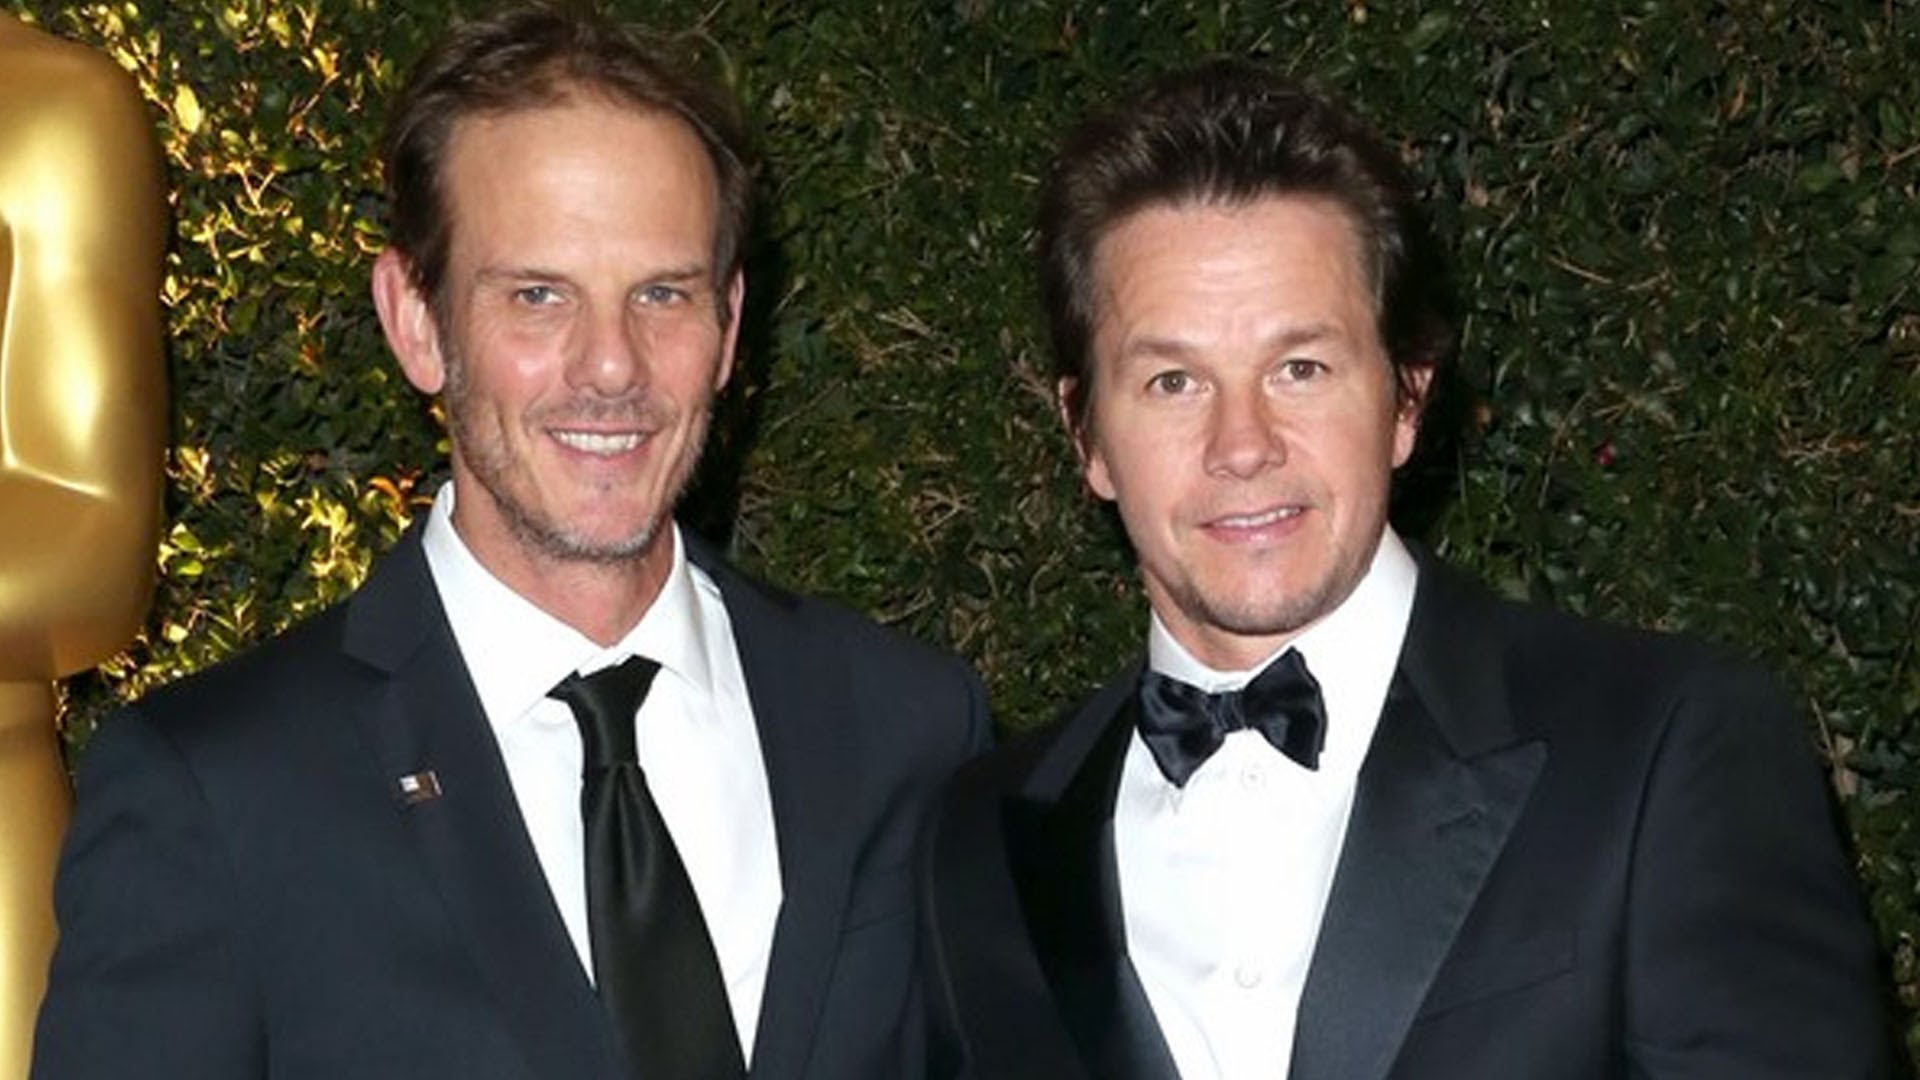 Peter Berg Wallpapers Peter Berg To Direct CBS Films Boston Marathon Drama Patriots